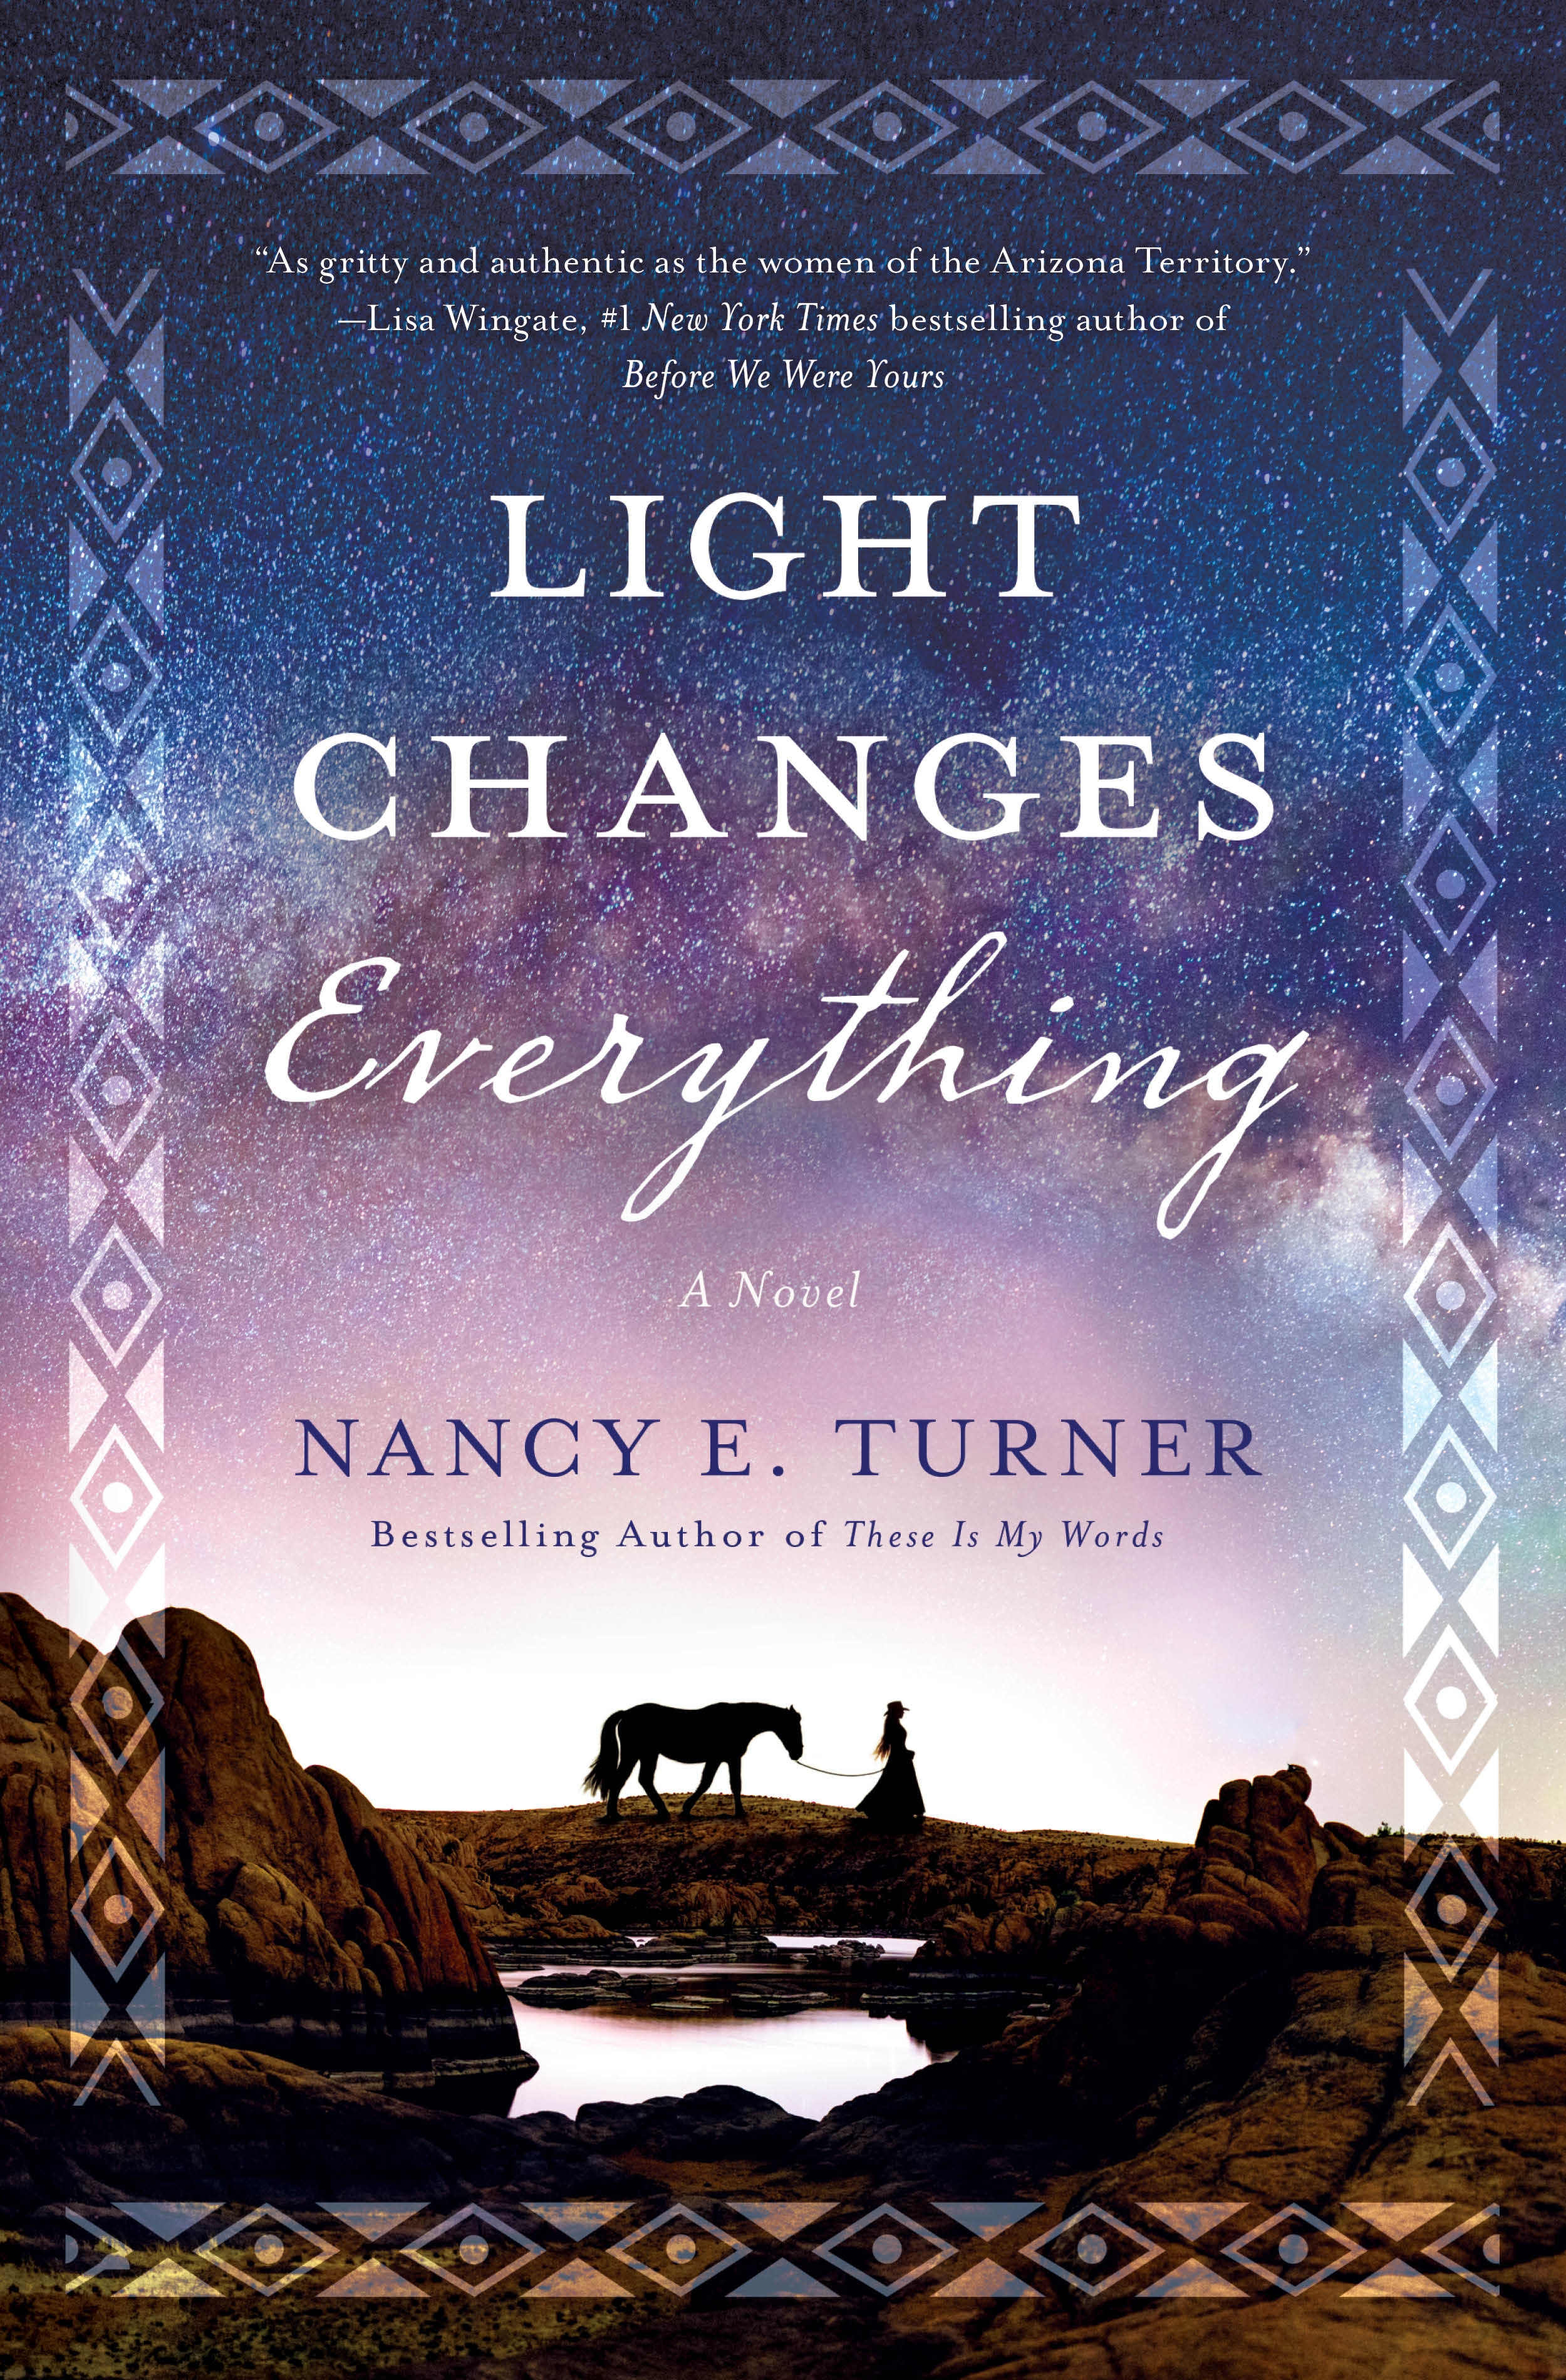 Light changes everything cover image